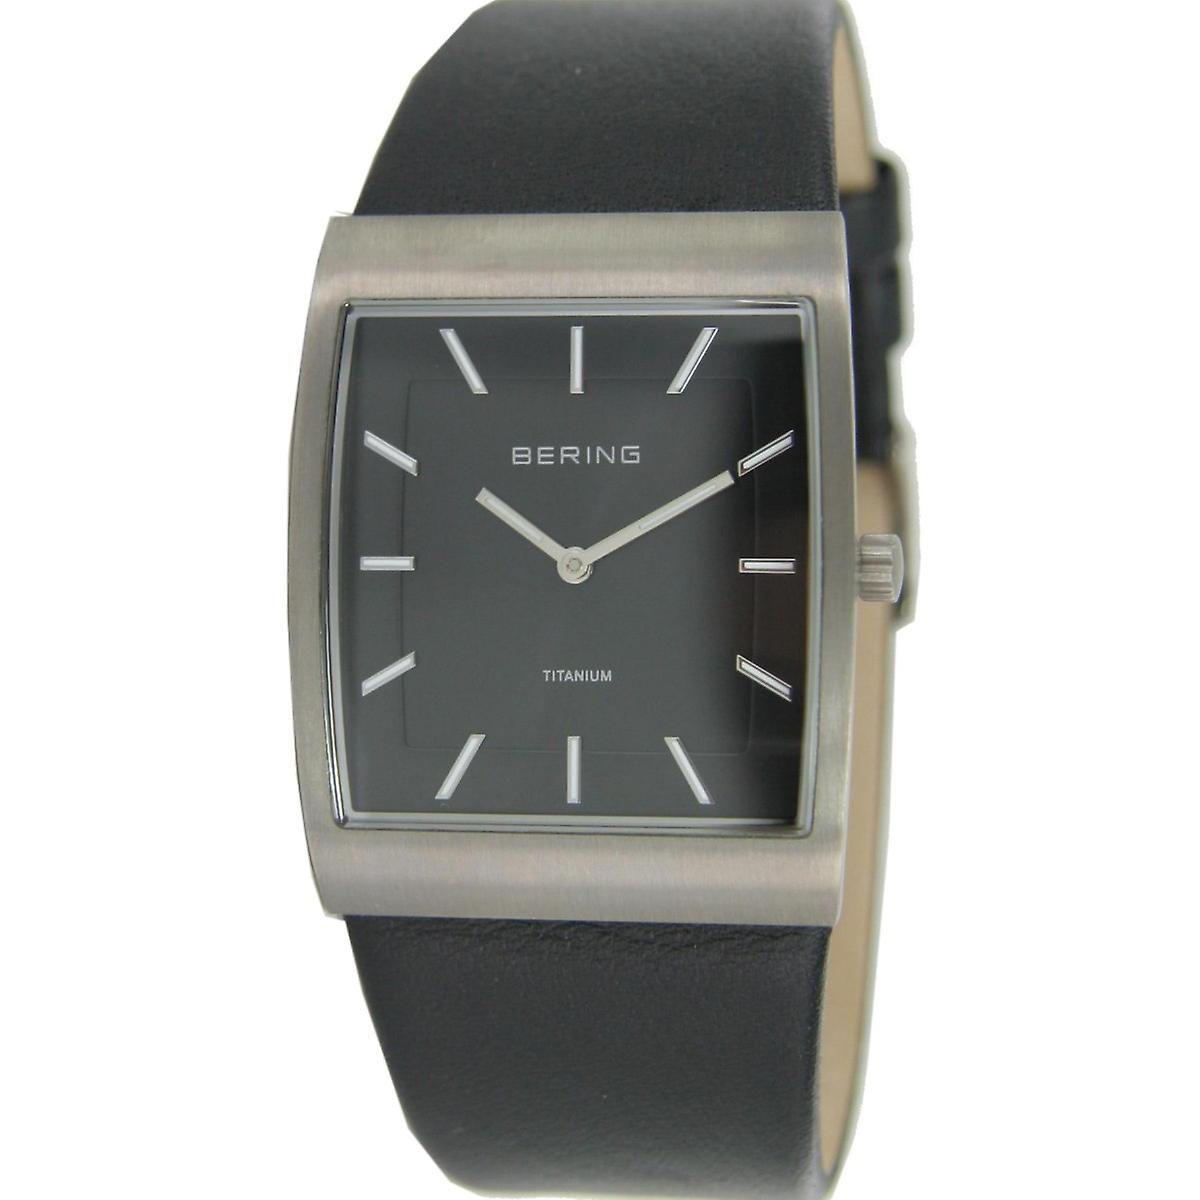 Bering unisex wristwatch slim classic watch 11233-402 leather